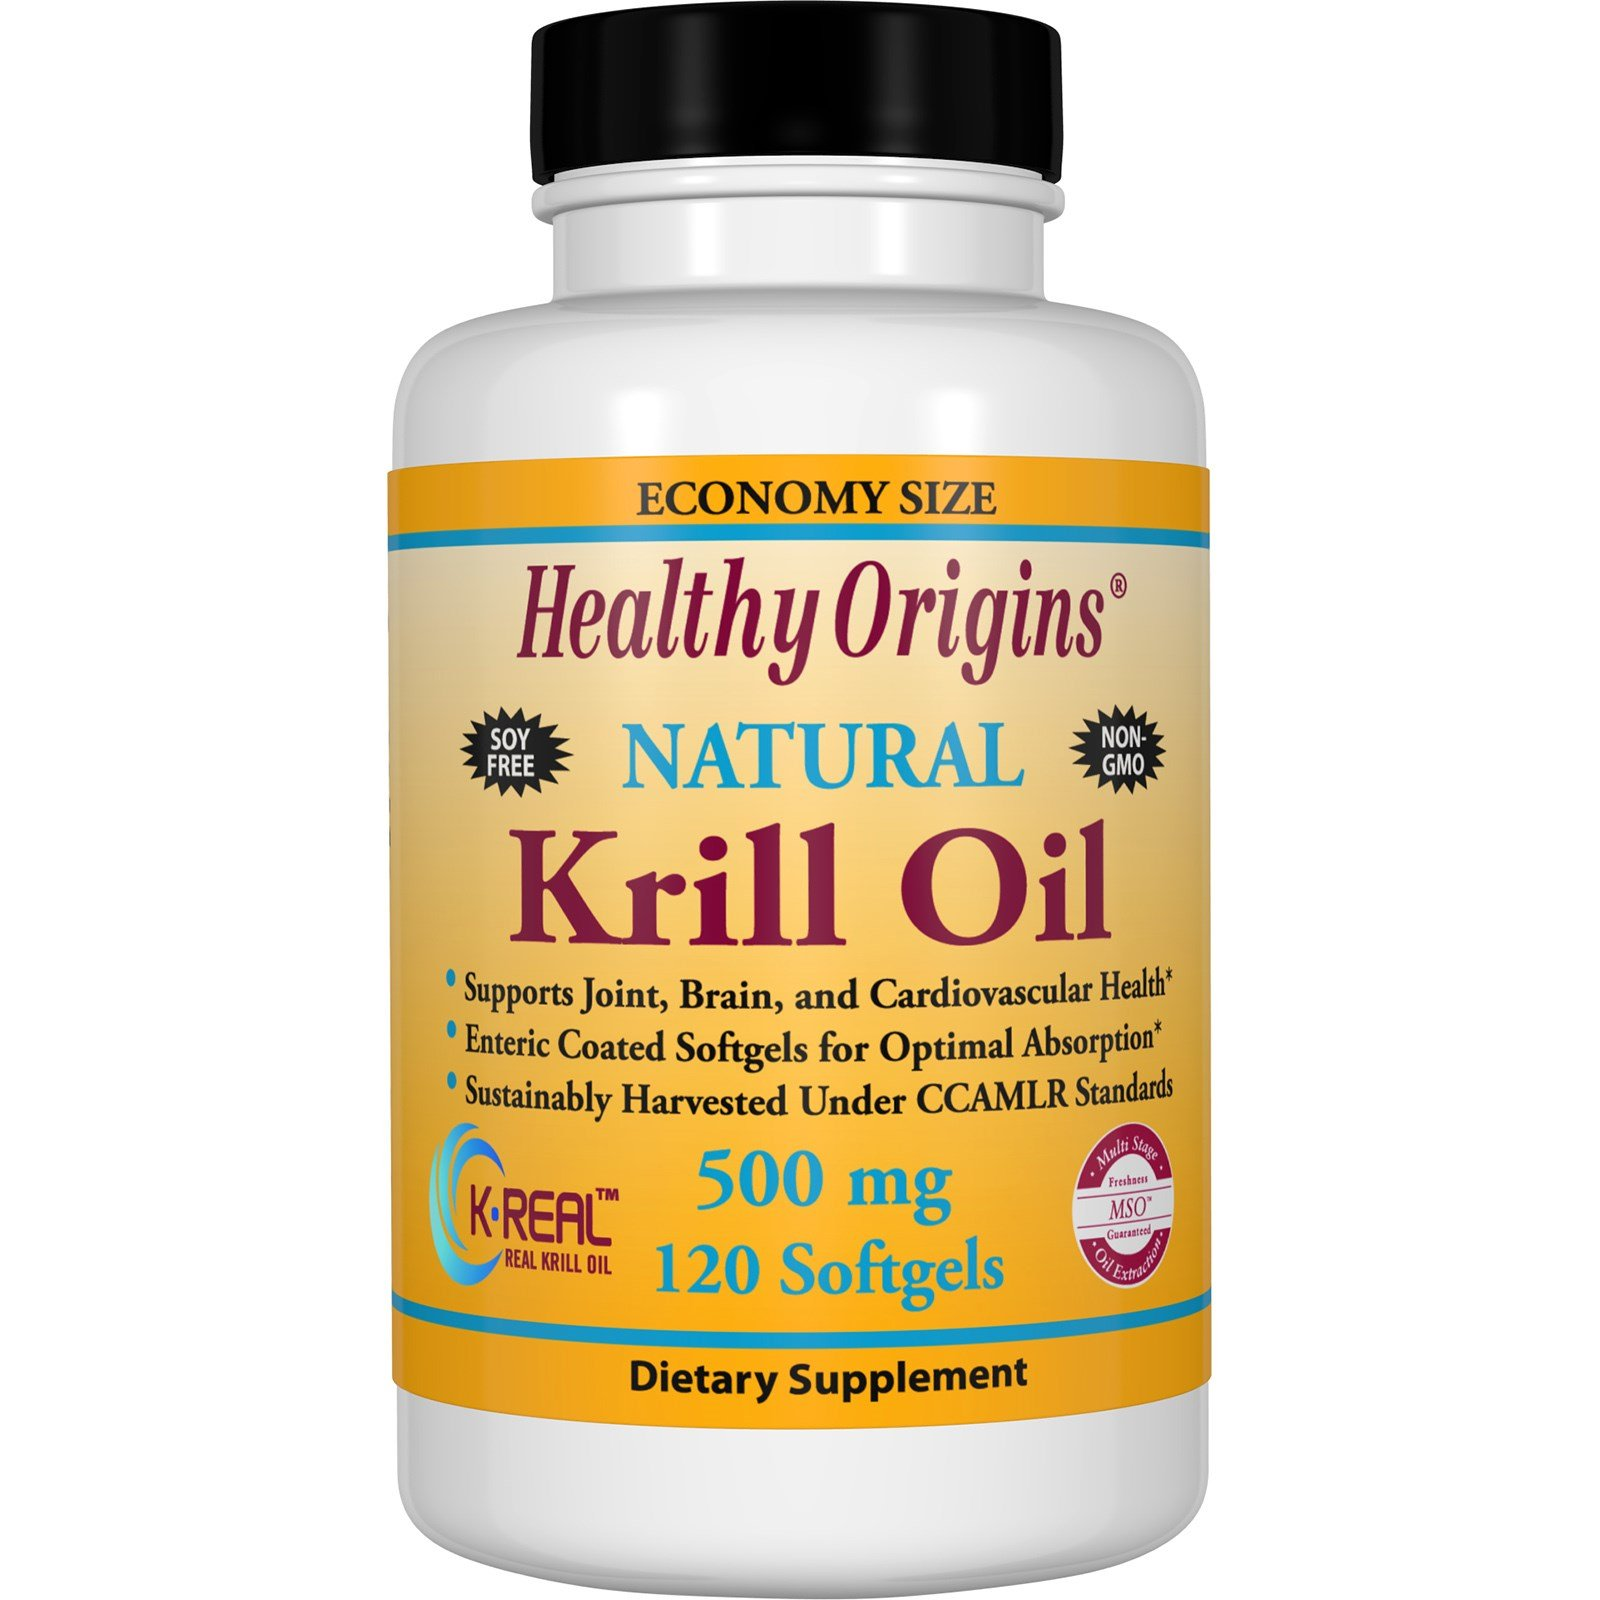 Healthy Origins, Krill Oil, Natural Vanilla Flavor, 500 mg, 120 Softgels - 3PC